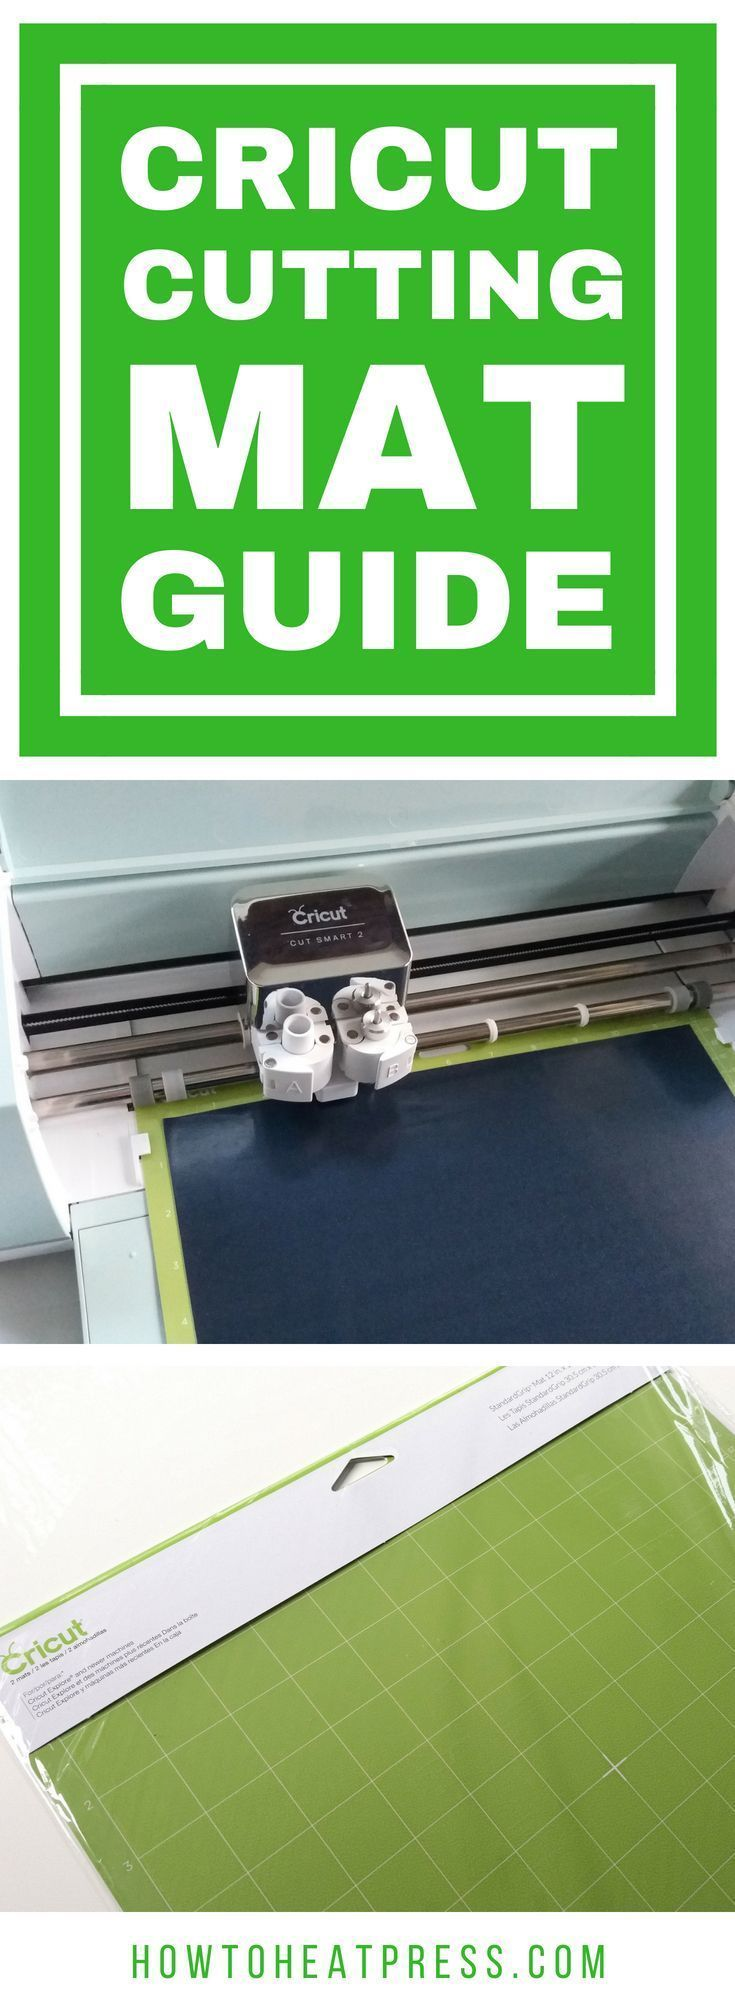 Cricut Cutting Mat Guide - Cricut Mats Tips & Tricks For Success #cricutexploreair2projects Cricut cutting mat guide | cricut beginner | cricut tutorials | cricut projects | cricut projects beginner | cricut design space tutorials | cricut business | cricut tips and tricks | cricut inspiration | cricut ideas | cricut how tos | cricut explore air 2 | cricut maker | cricut maker projects | heat transfer vinyl projects | adhesive vinyl projects | craft projects | craft ideas | cricut accessories #cricutexploreair2projects